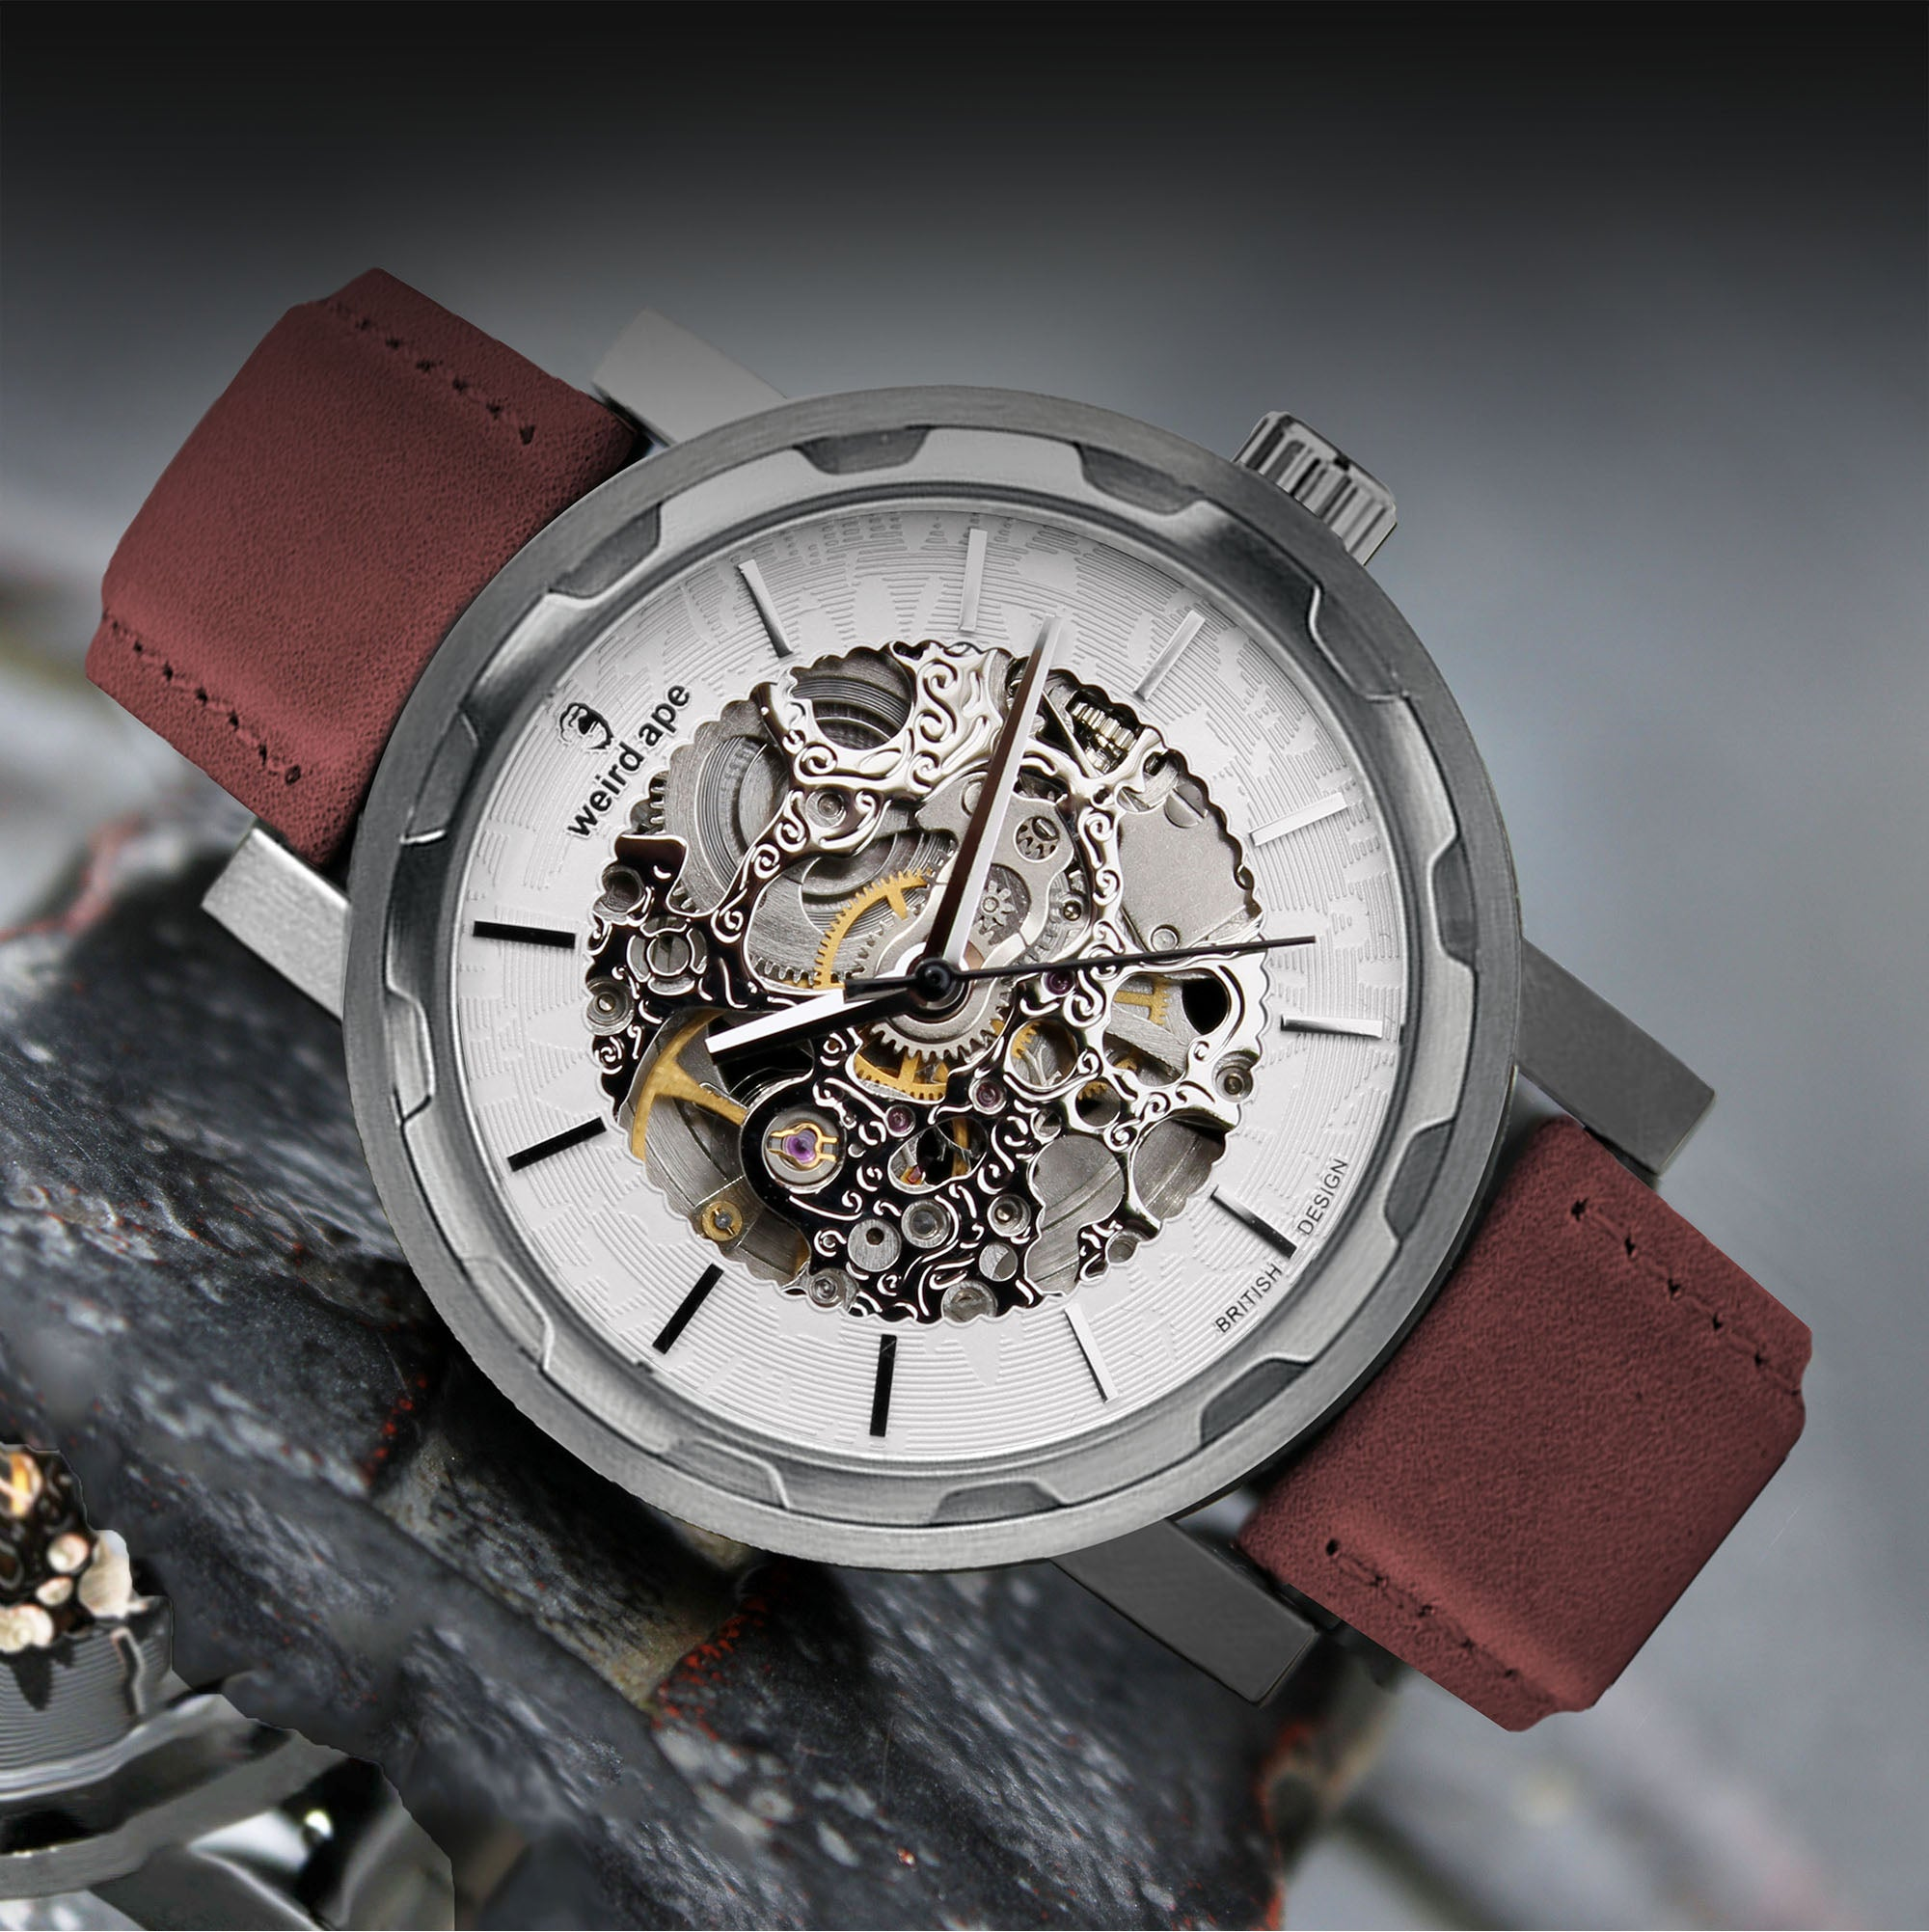 A picture of a silver mechanical watch with a suede leather burgundy strap.